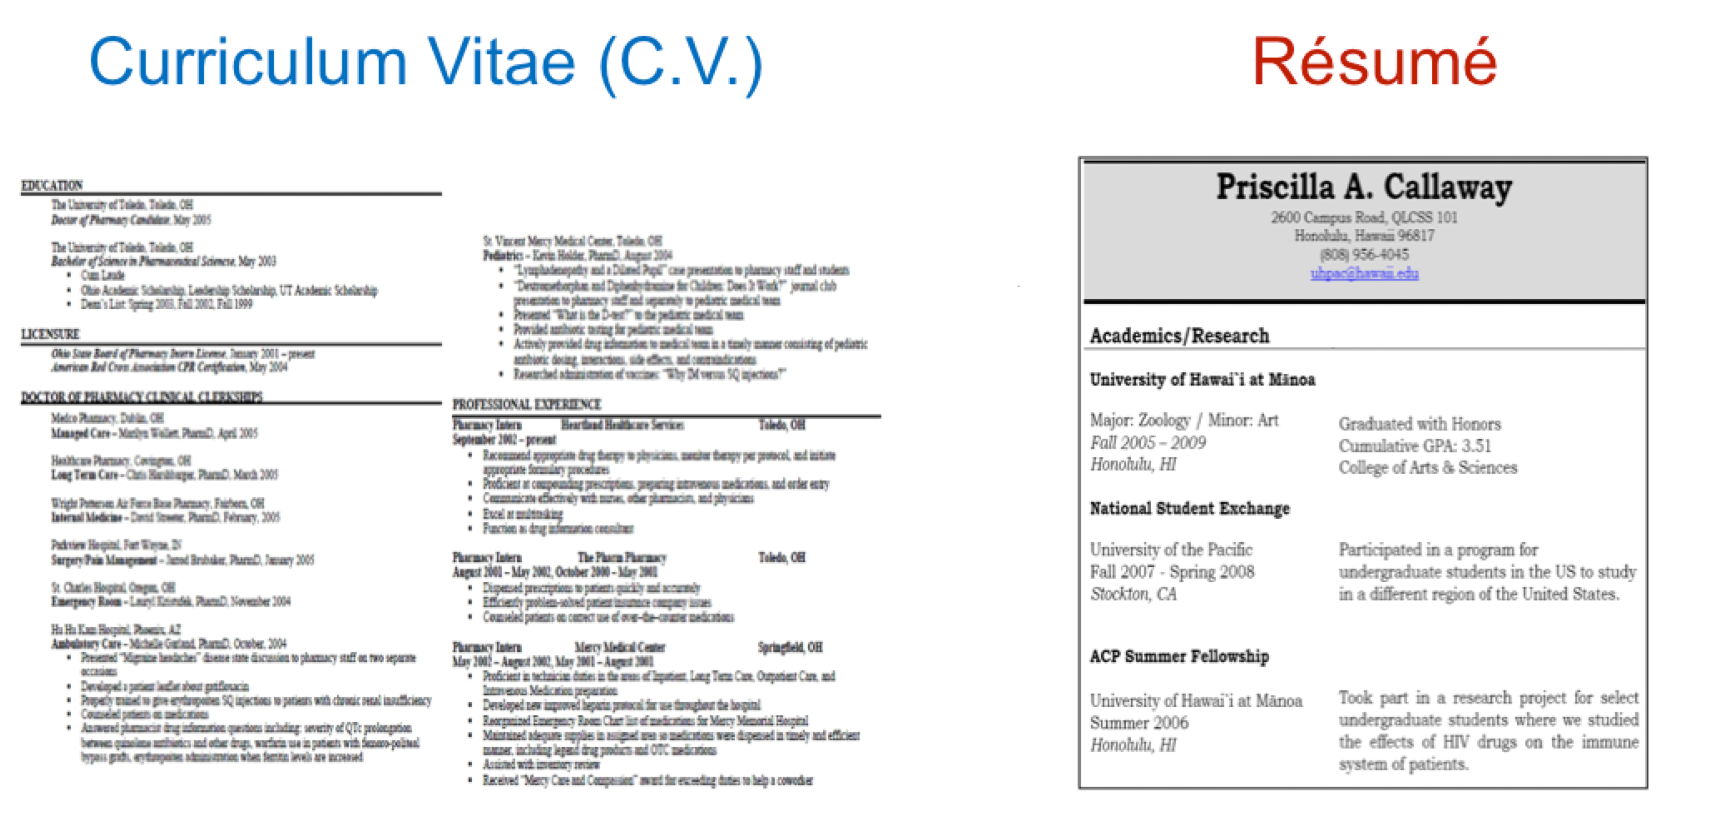 cv vs resume - Cv Or Resume